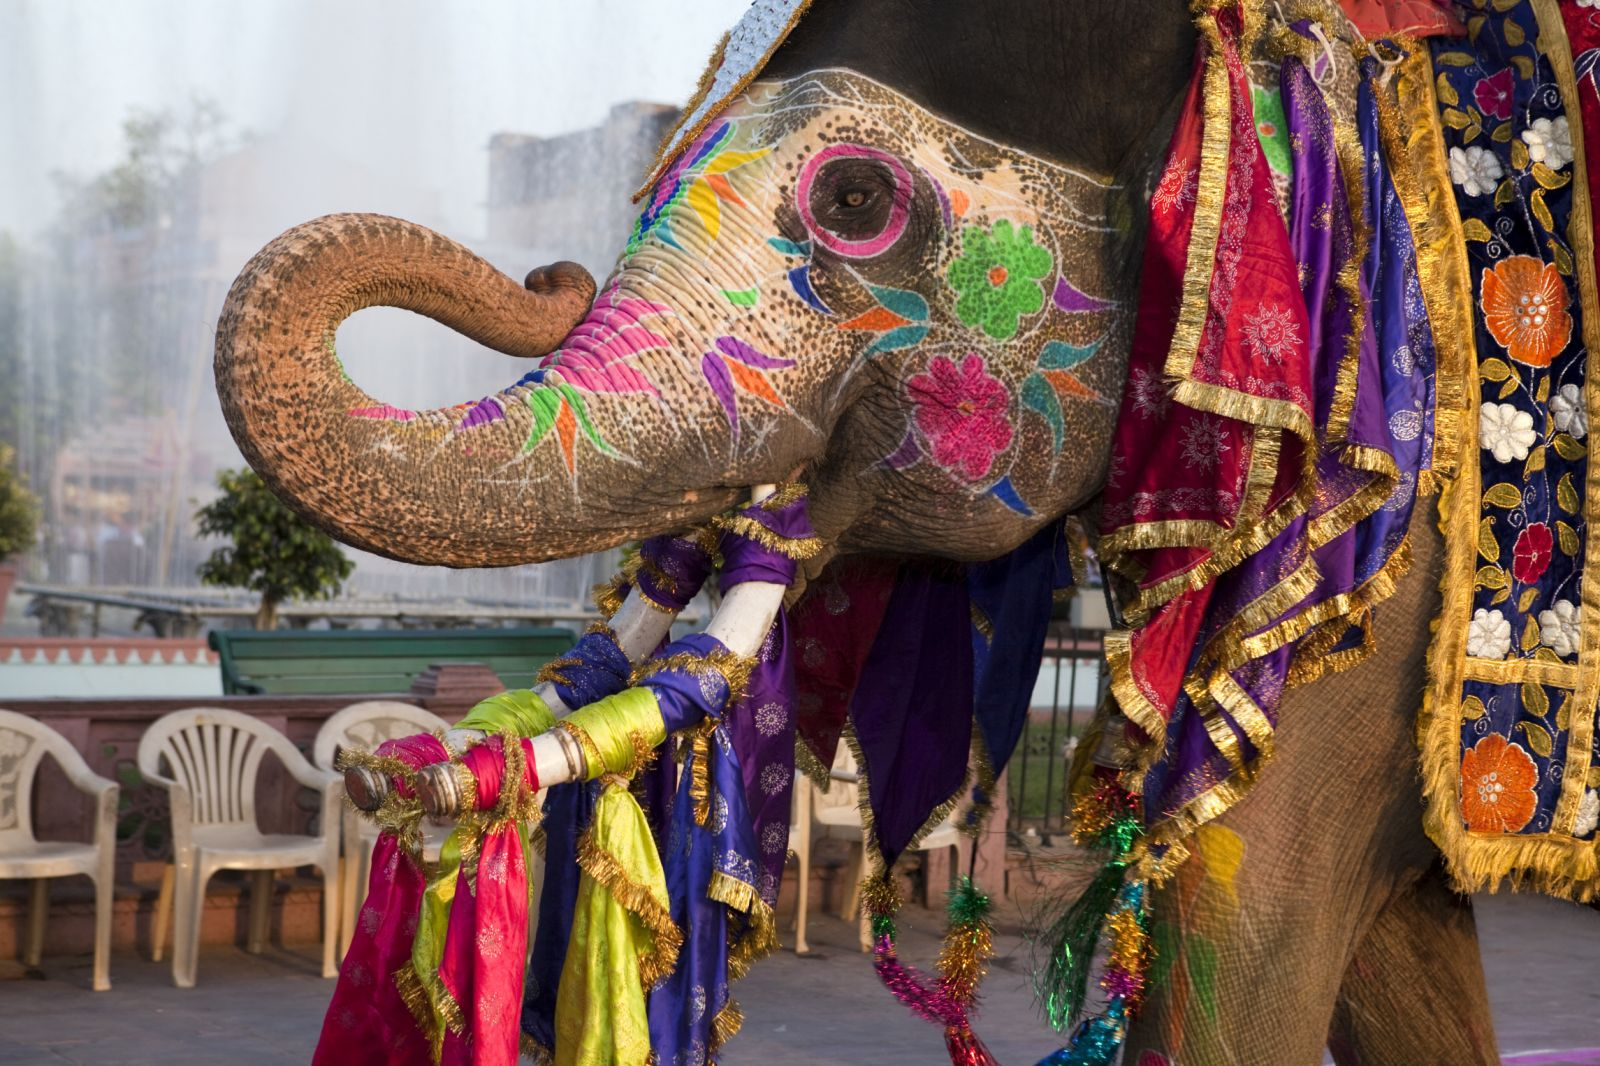 This amazing elephant was dressed up for an annual parade on the occasion of Spring coming celebration. We had a lot fun!